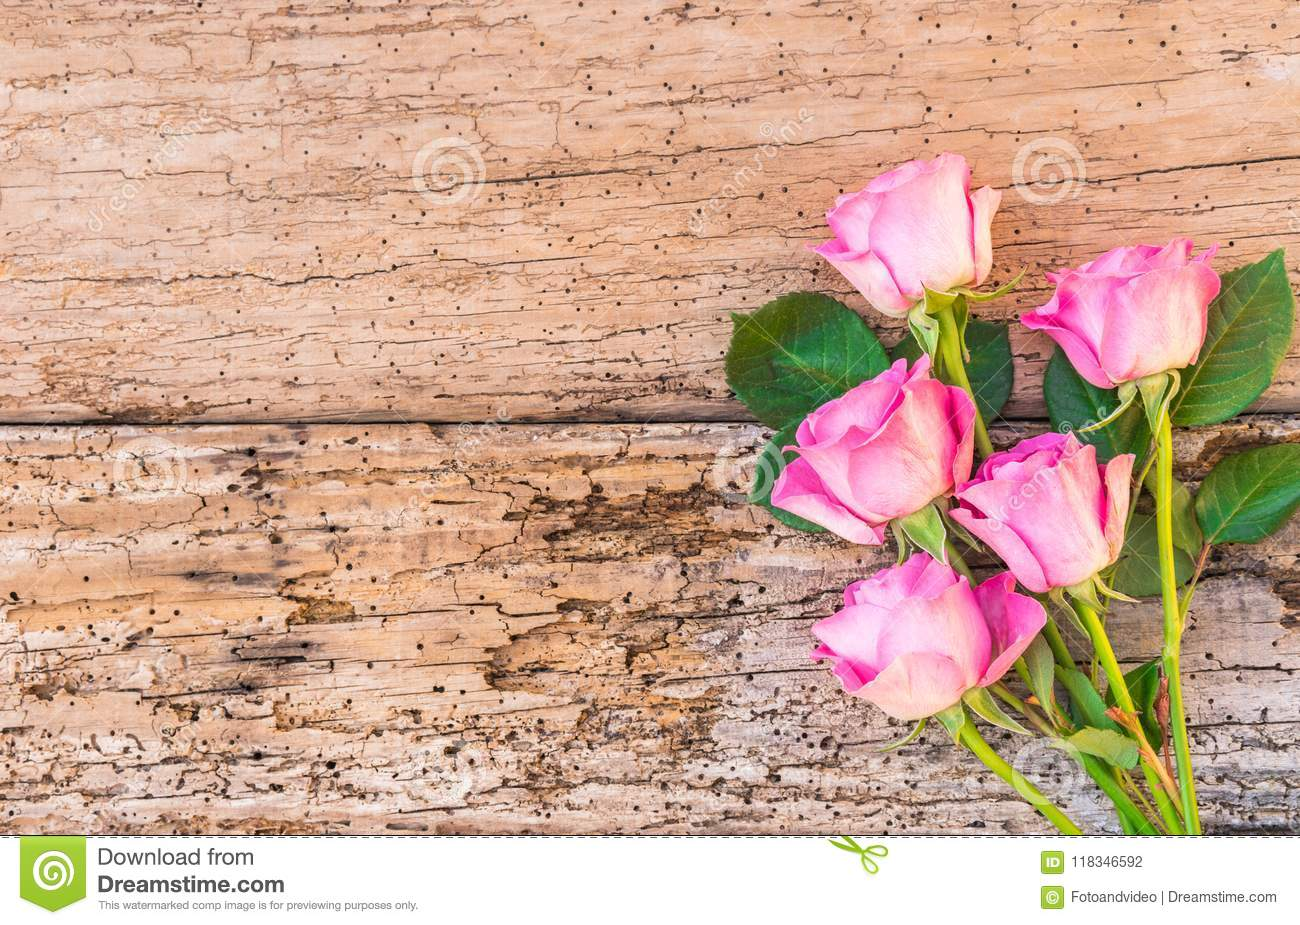 Bouquet Of Pink Roses On Old Wood Romantic Flowers Background For Birthday Or Valentine Card Stock Photo Image Of Beauty Blossom 118346592